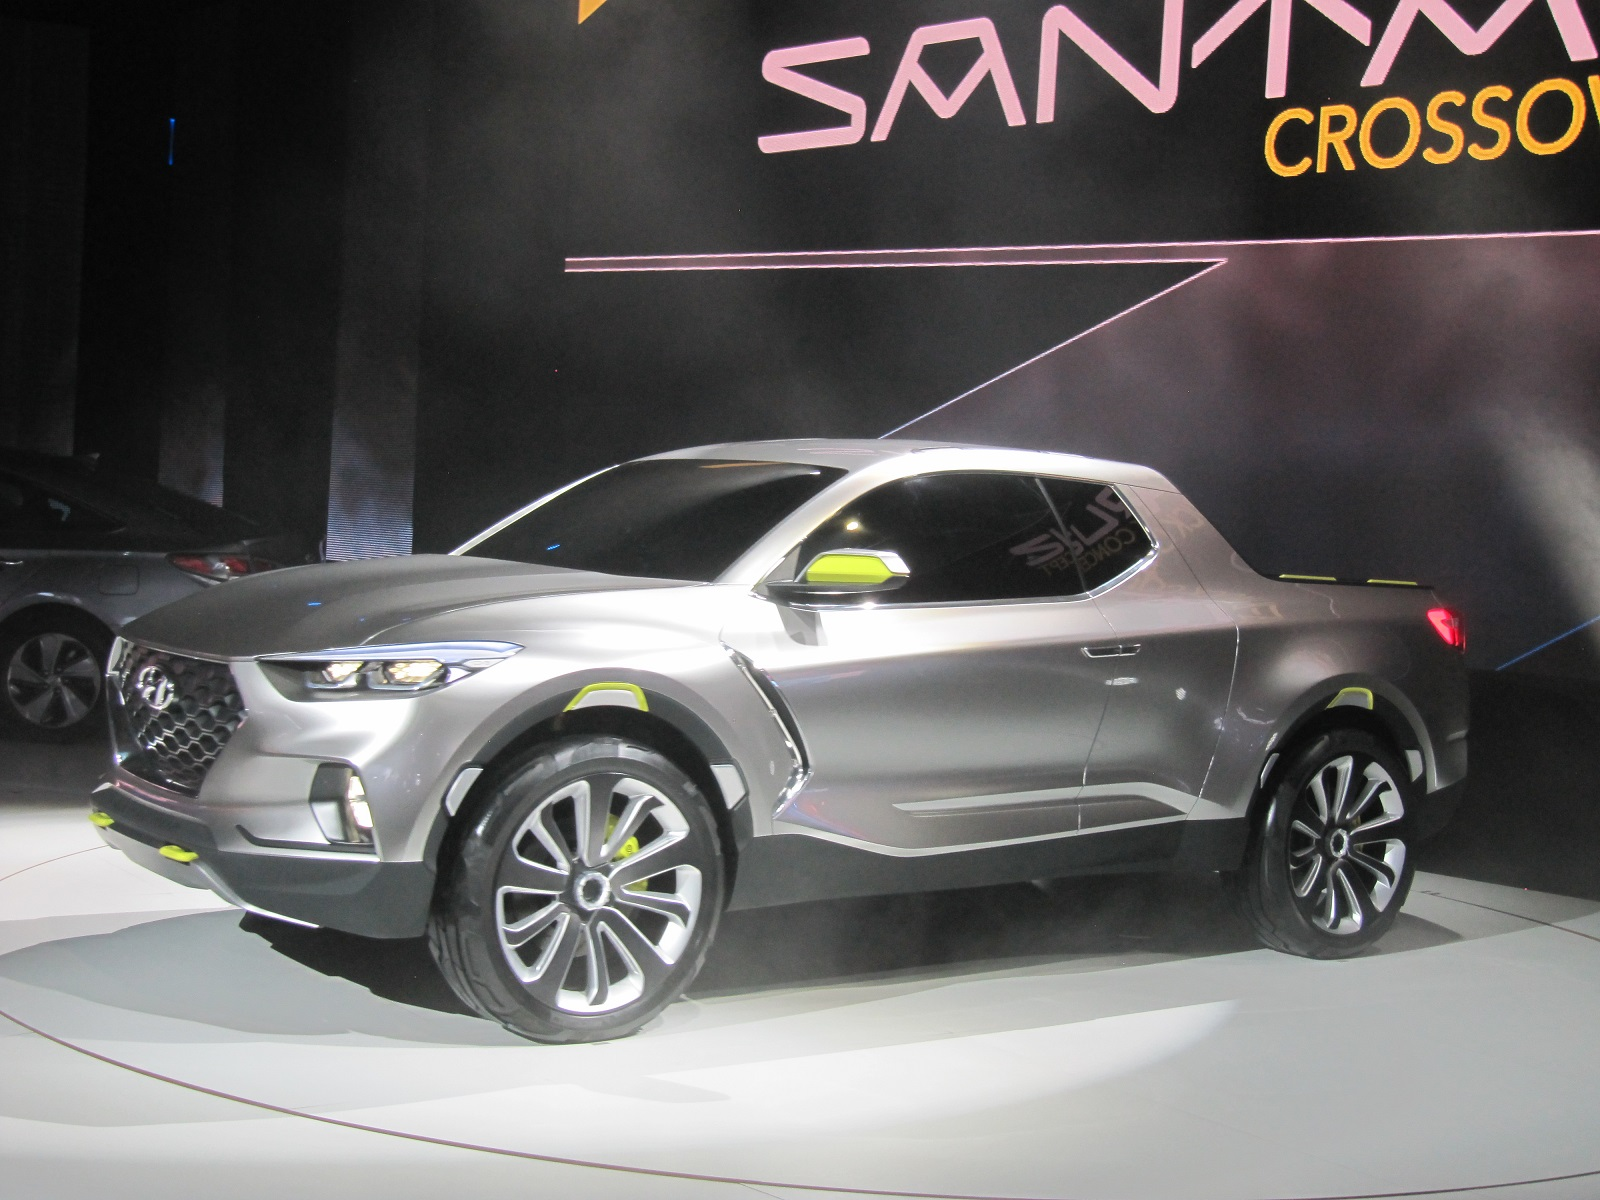 hyundai santa cruz crossover pickup truck concept 2015 detroit auto show. Black Bedroom Furniture Sets. Home Design Ideas